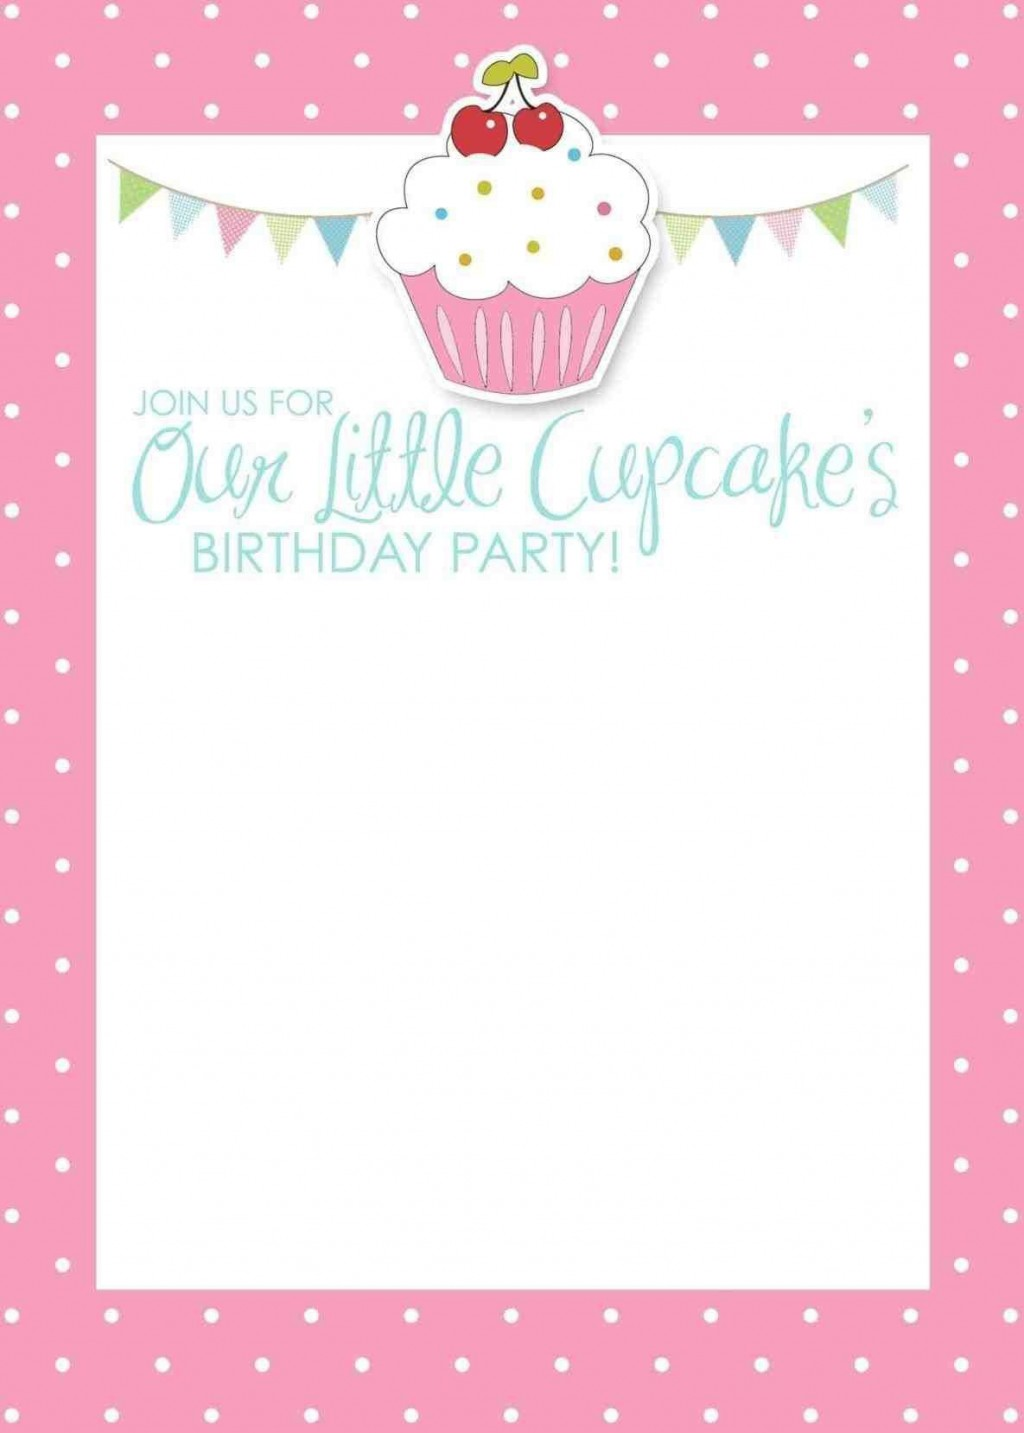 004 Fascinating Birthday Card Template For Word 2010 High Resolution  Greeting MicrosoftLarge